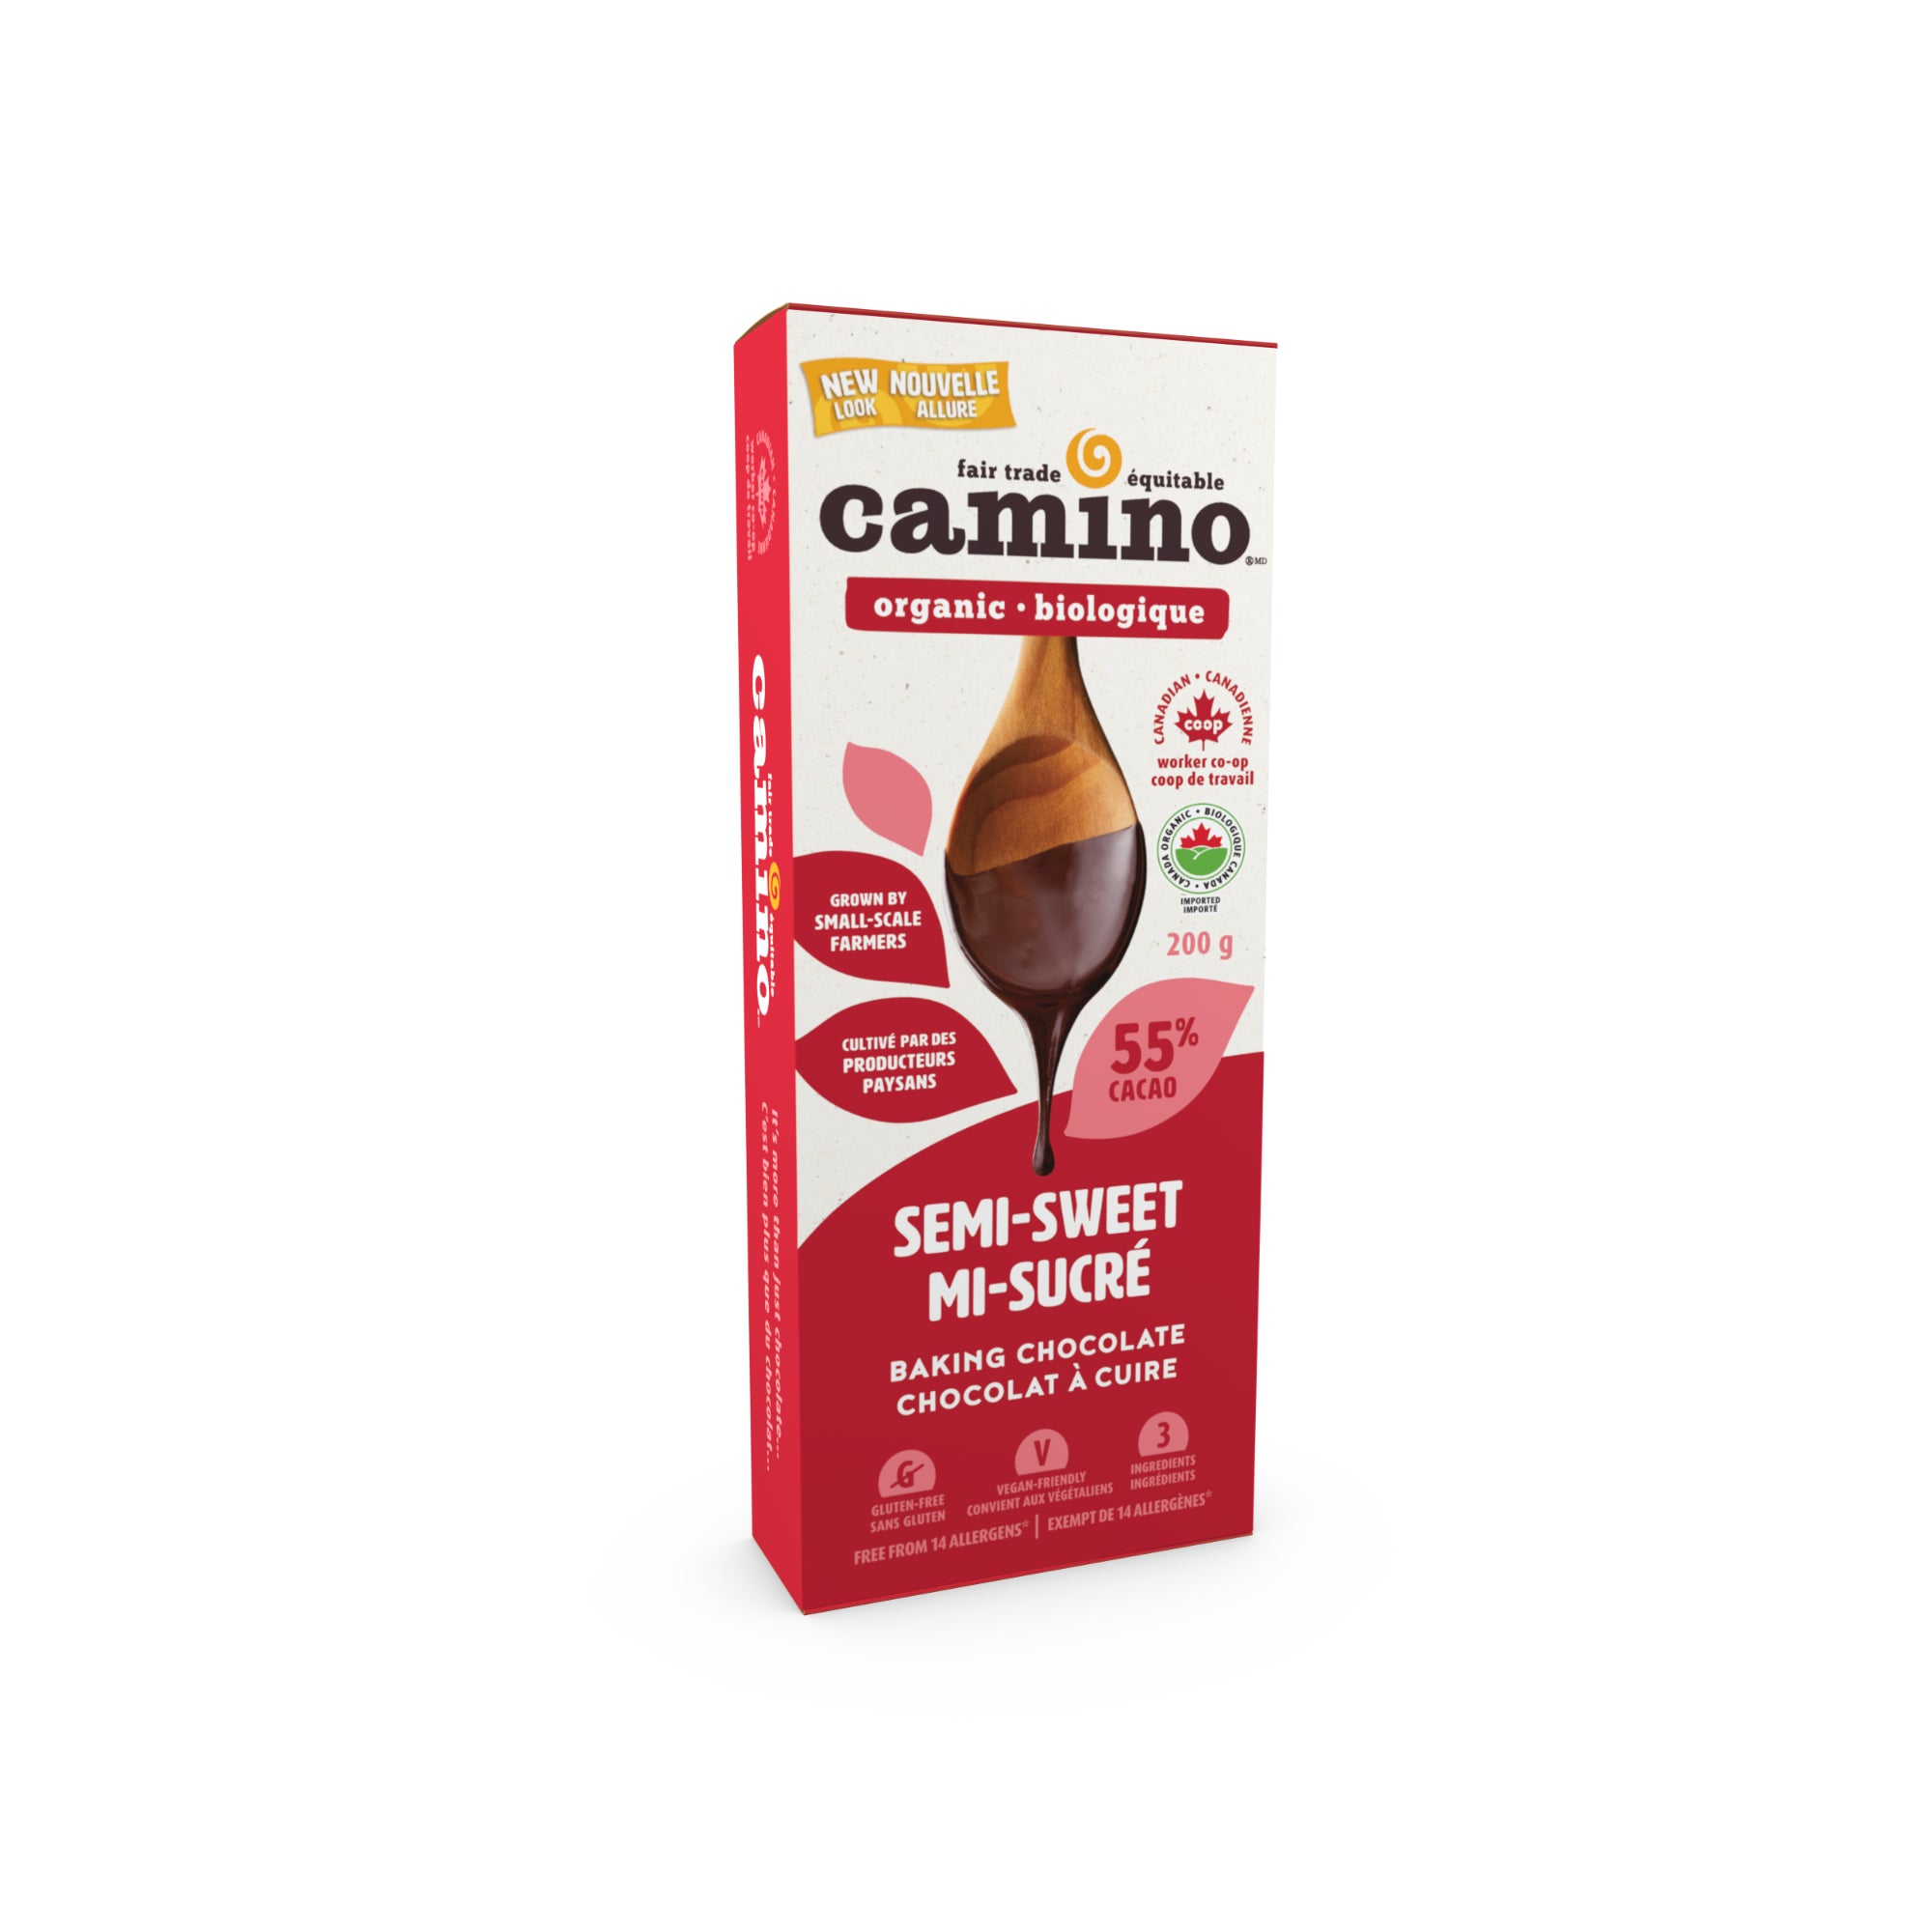 Camino - Baking Chocolate, 55% Semi-sweet, 200g